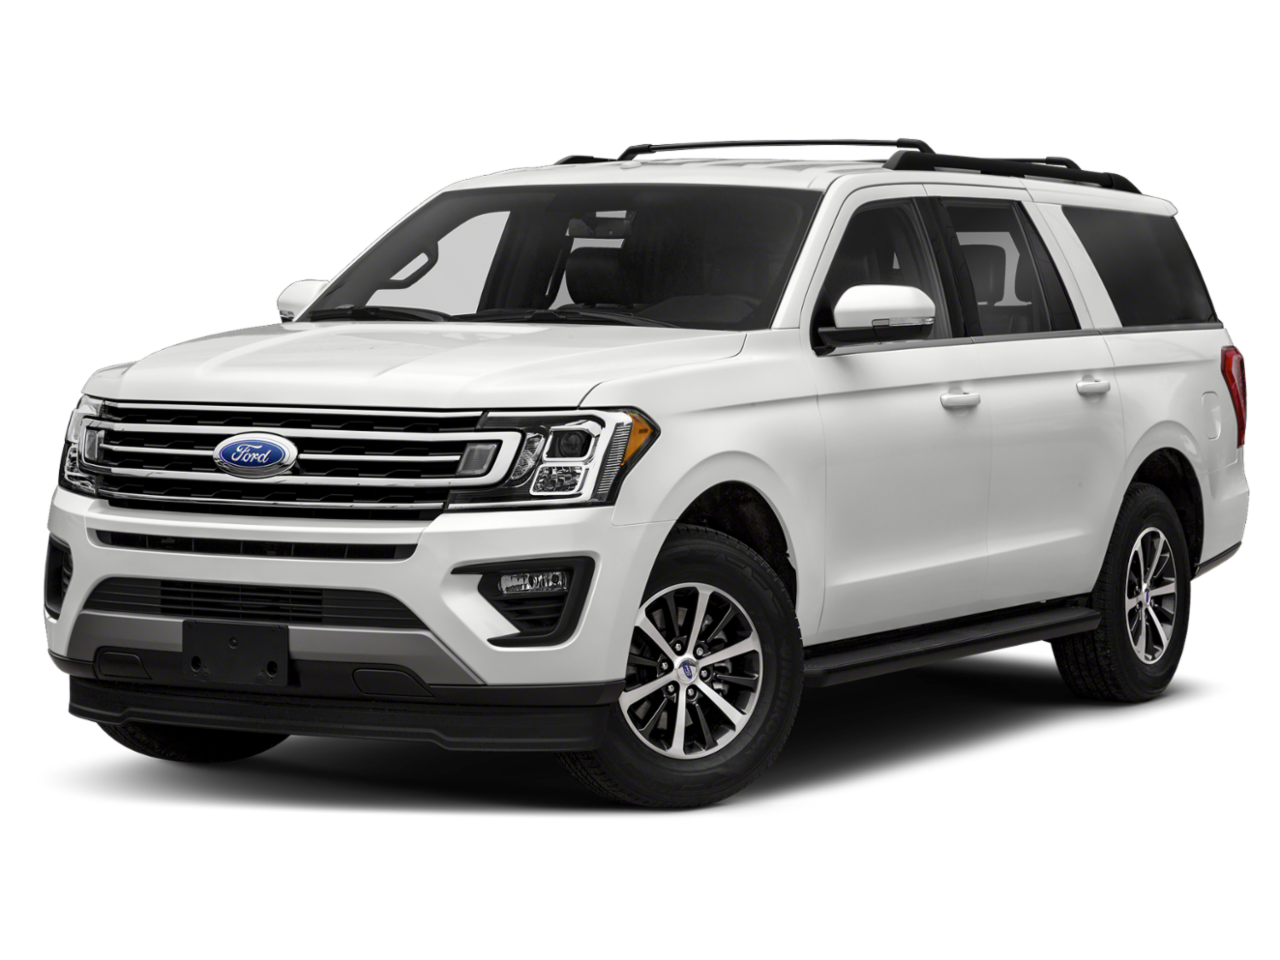 image-0 2020 Ford EXPEDITION